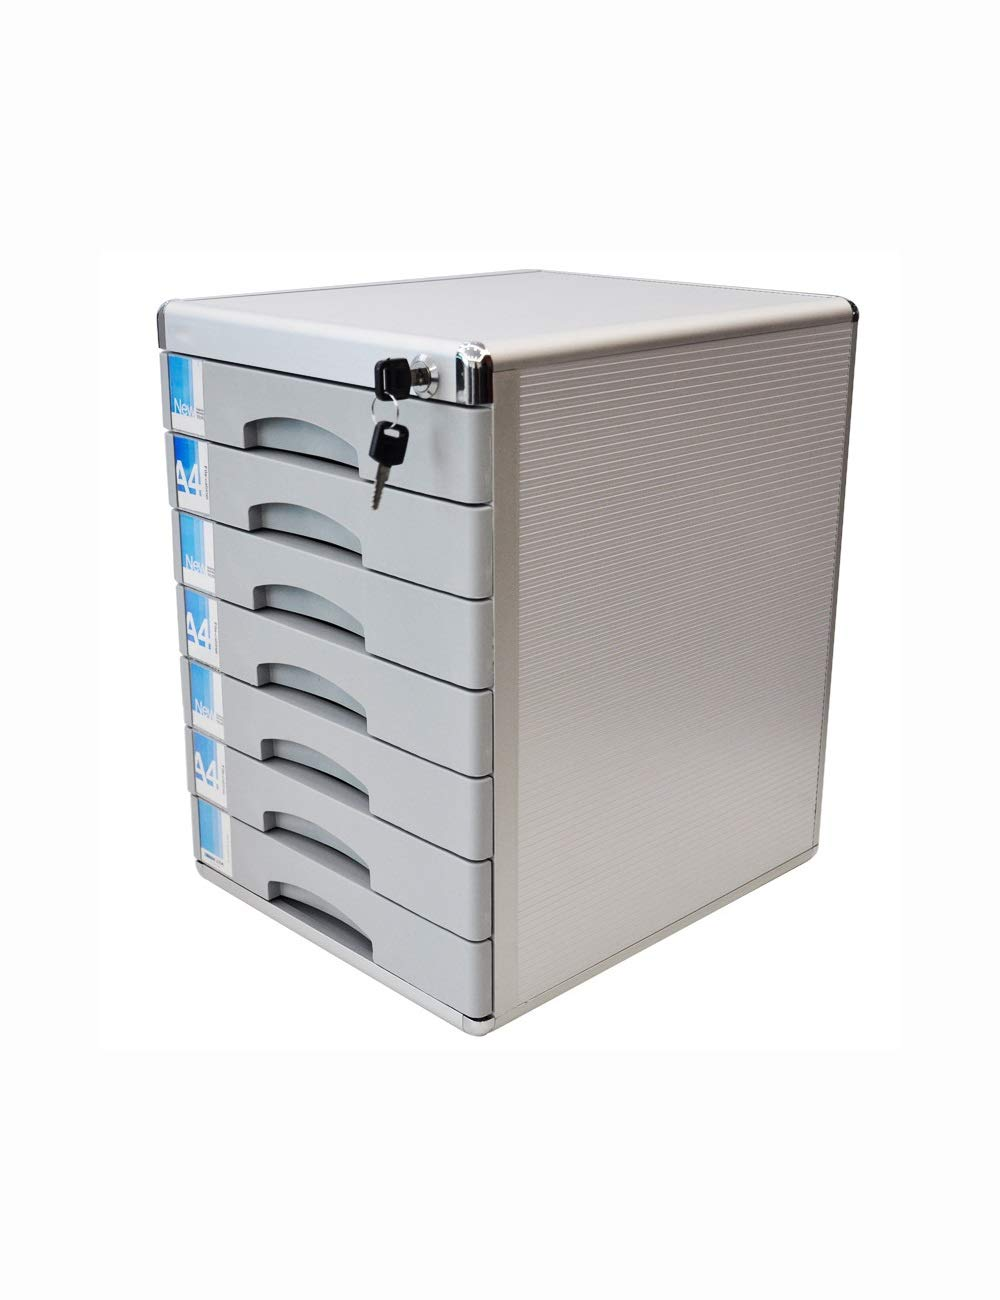 File Cabinets Desktop Cabinet 7 Drawers with Lock H400xW36xL30mm Aluminum Alloy Security Cabinet File Storage Cabinet